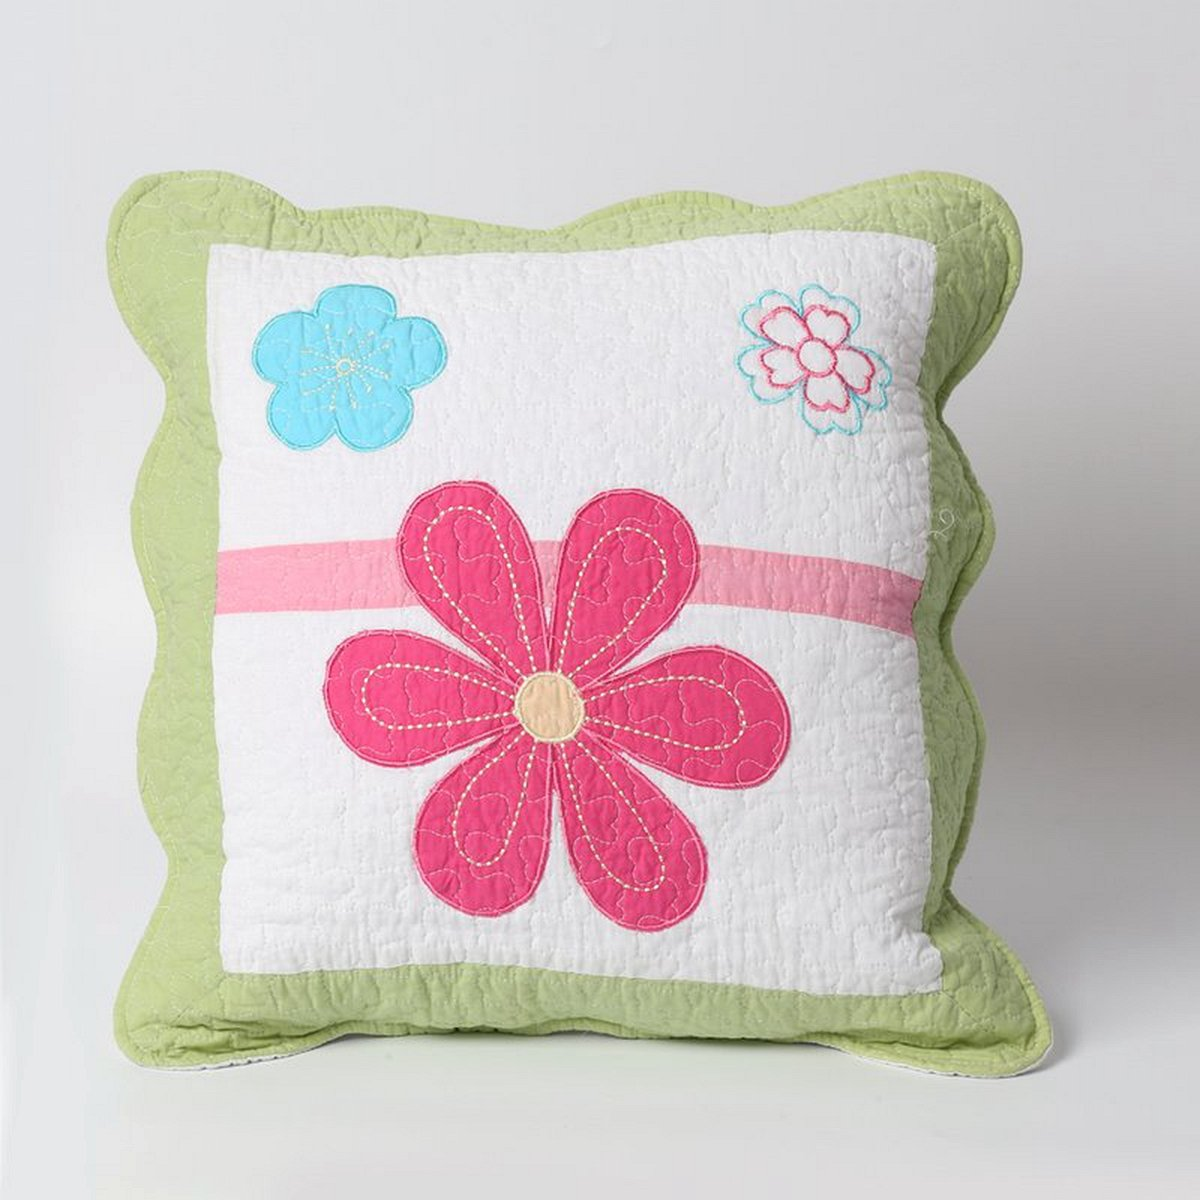 Cozy Line Home Fashions Throw Pillow 16'' x 16'', Pink Flower Embroidered Print Pattern Stuffed Decorative Pillow, 100% COTTON, Gifts for Kids, Girls (Green Flower, Decor Pillow -1pc)